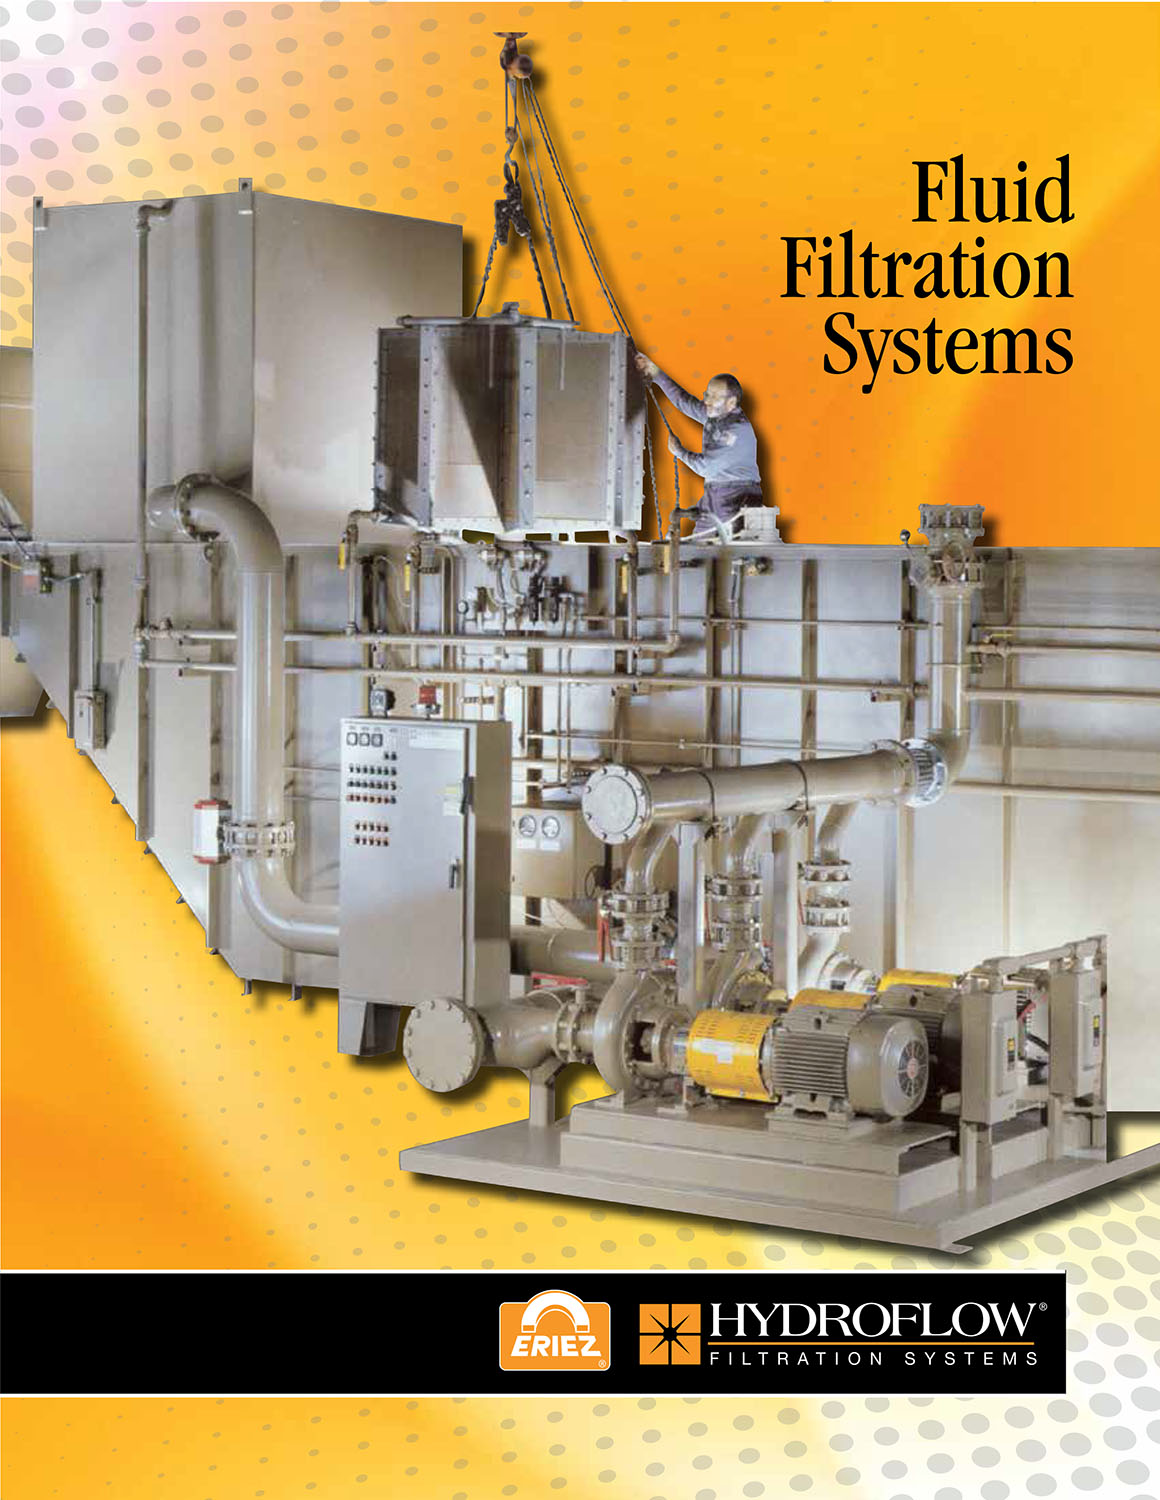 Eriez Offers New Hydroflow Fluid Filtration Systems